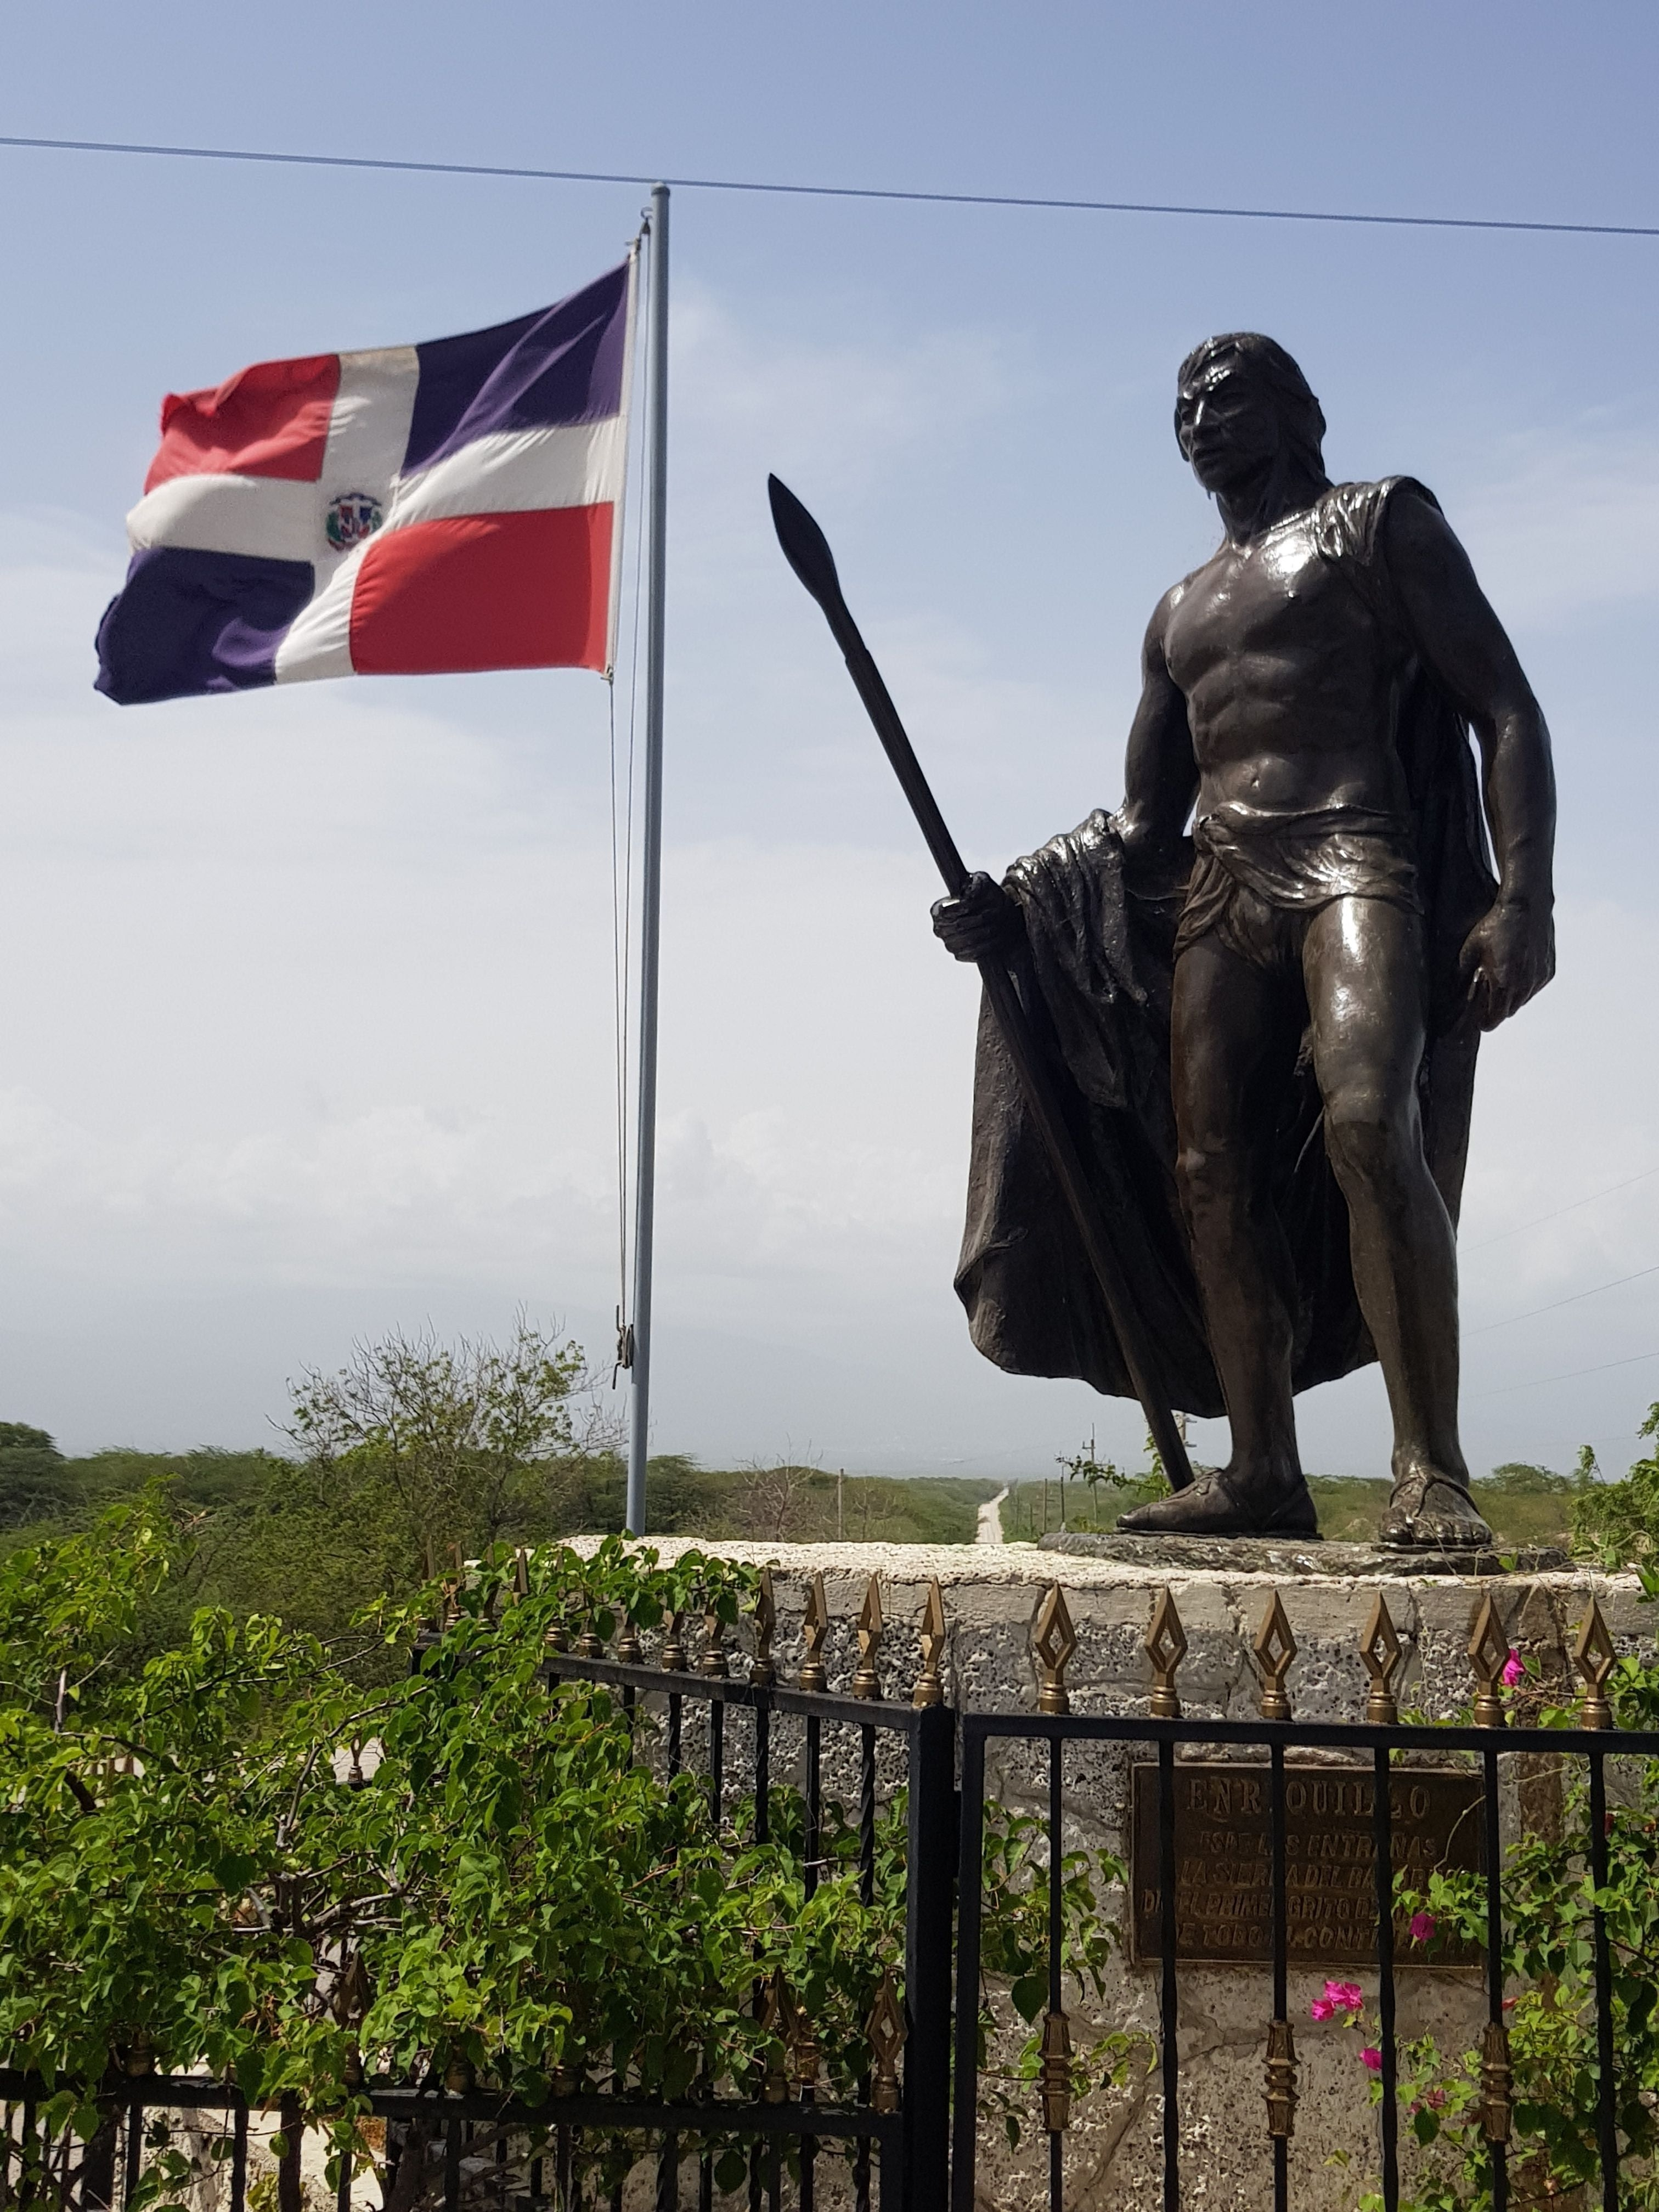 Enriquillo and Marker